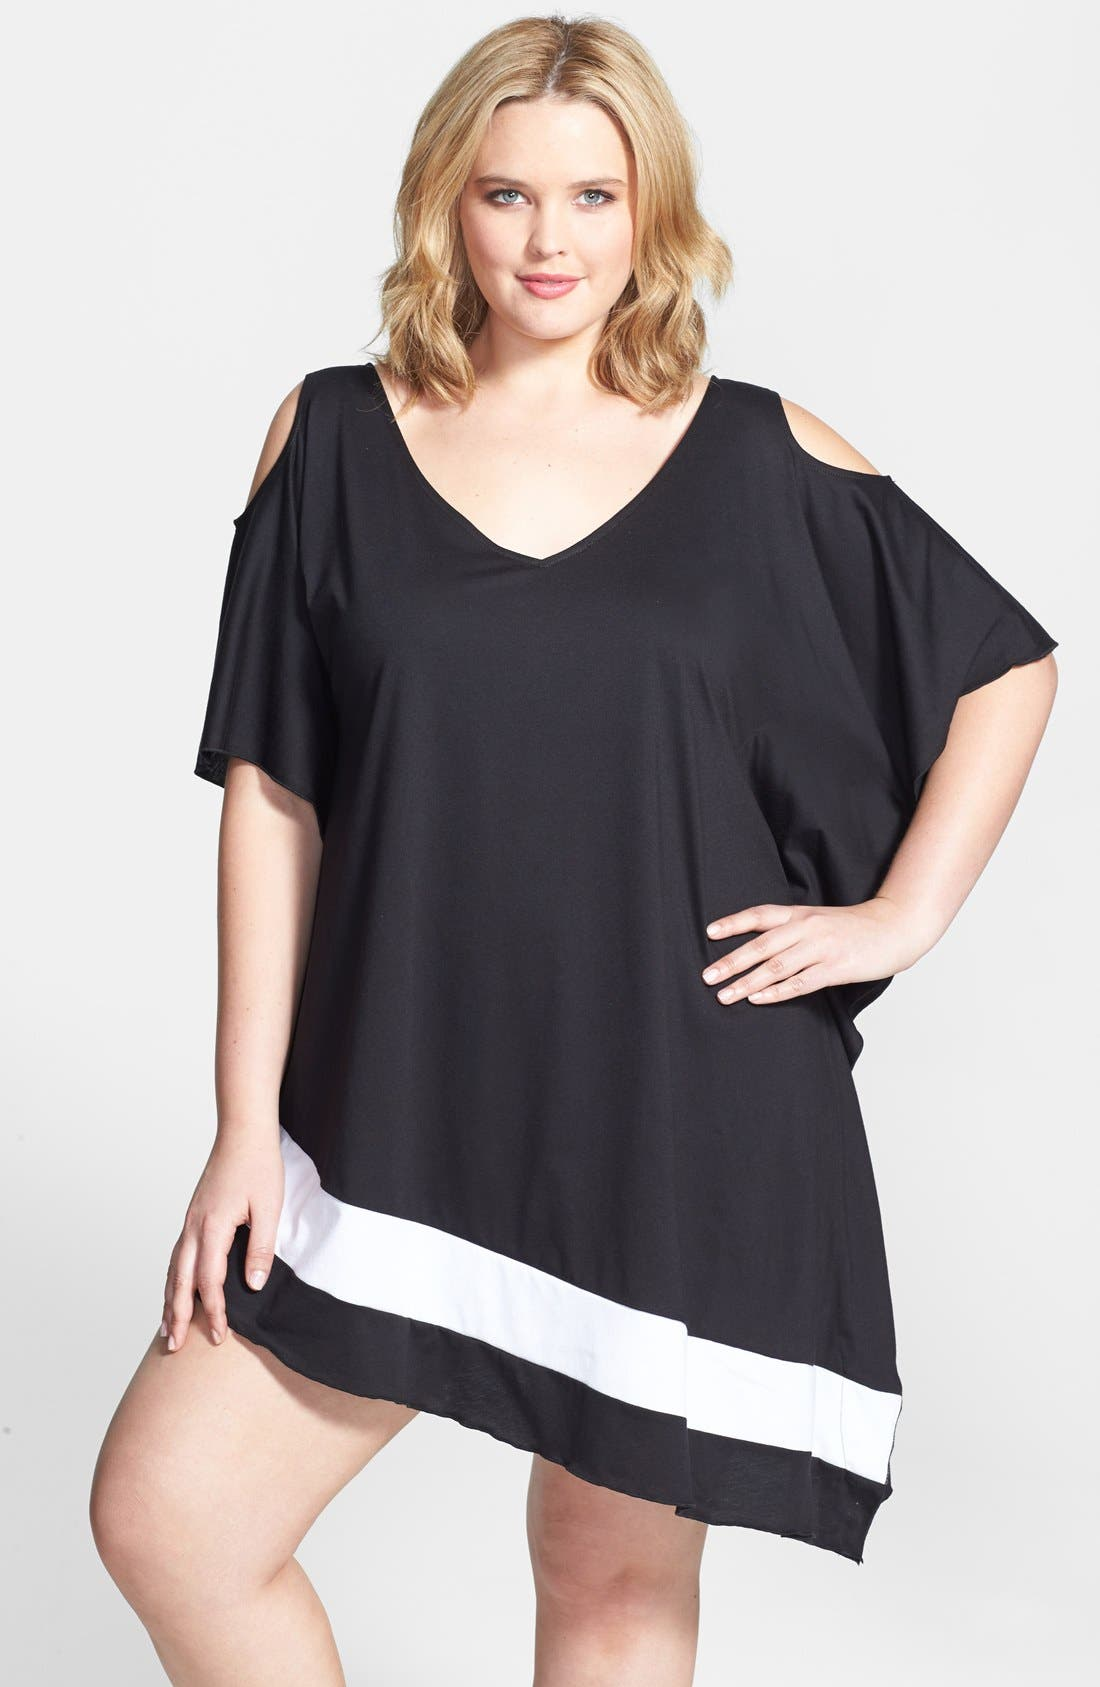 Main Image - Becca Etc. 'Day & Night' Cutout Shoulder Asymmetrical Cover-Up Dress (Plus Size)